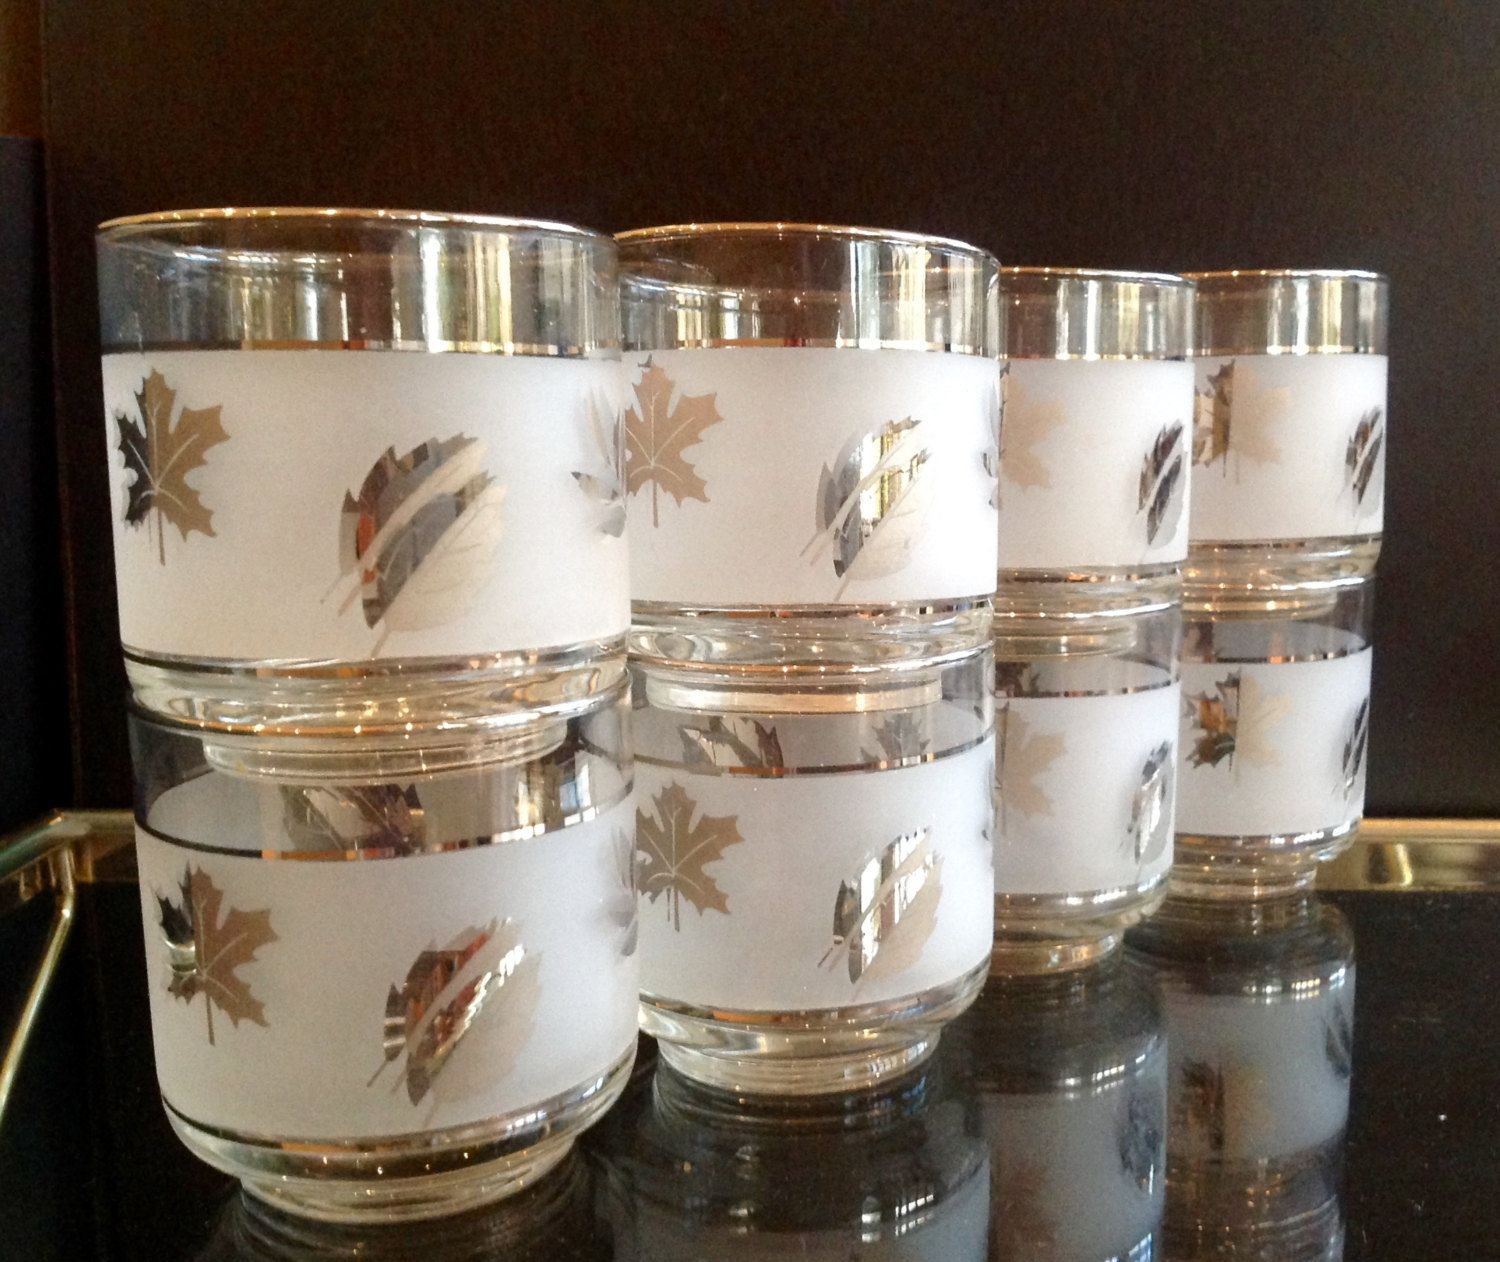 Vintage Set of 8 Glasses - Frosted Leaves - Mid Century Modern - Retro Cool - Libbey